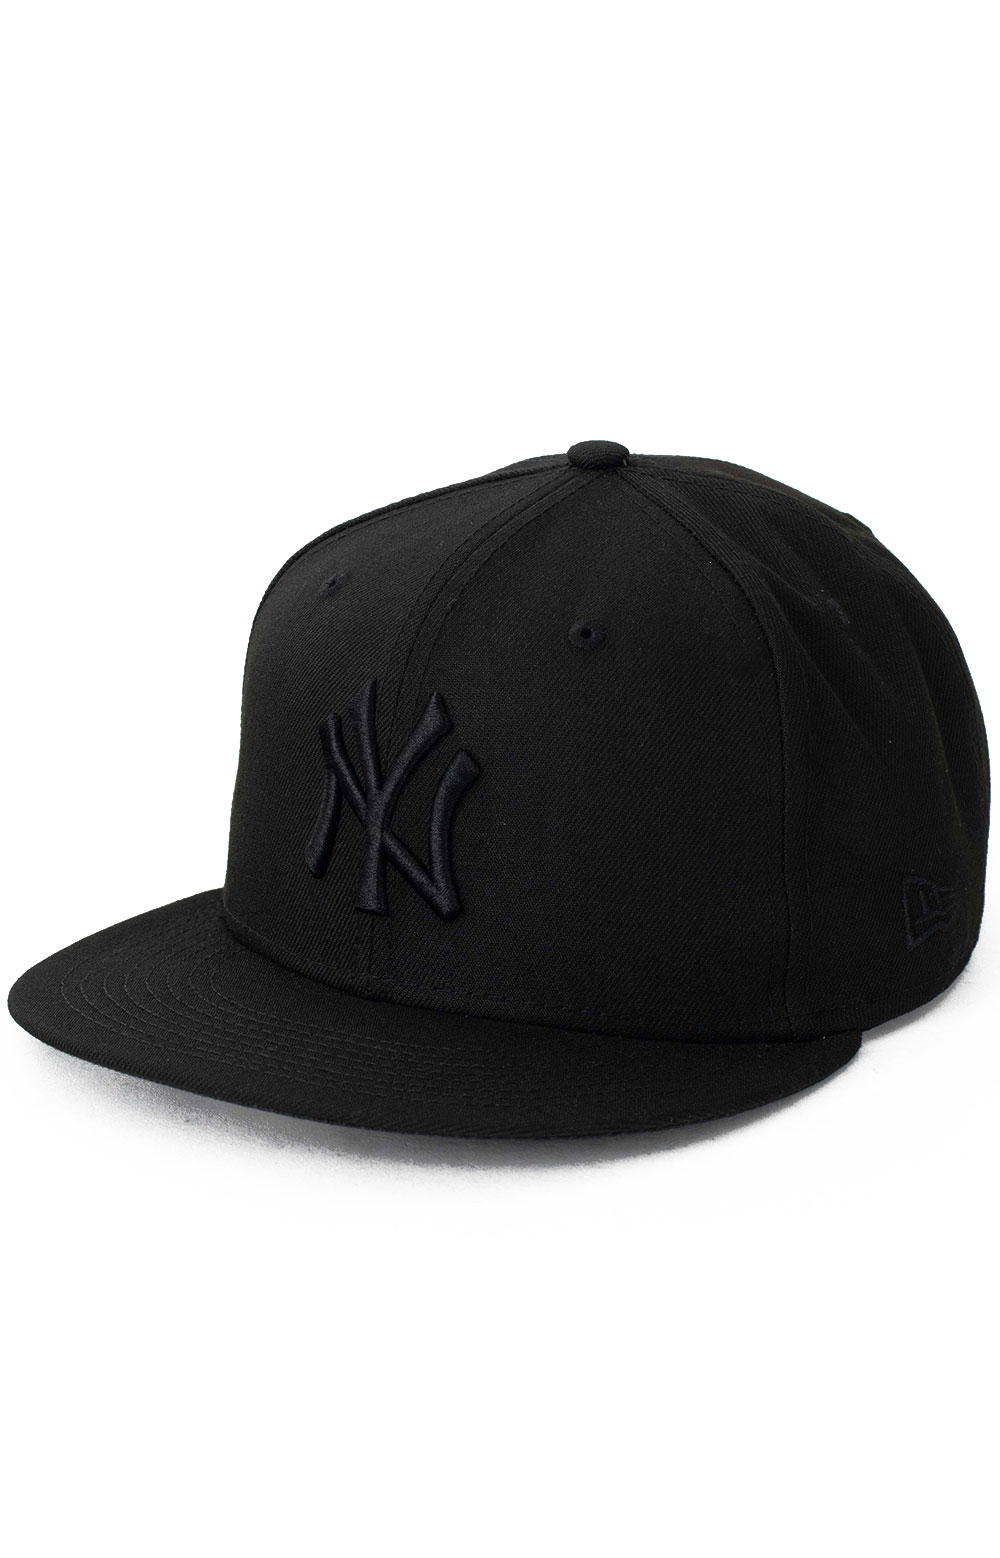 9Fifty Color Pack Snap-Back Hat - NY Yankees Black